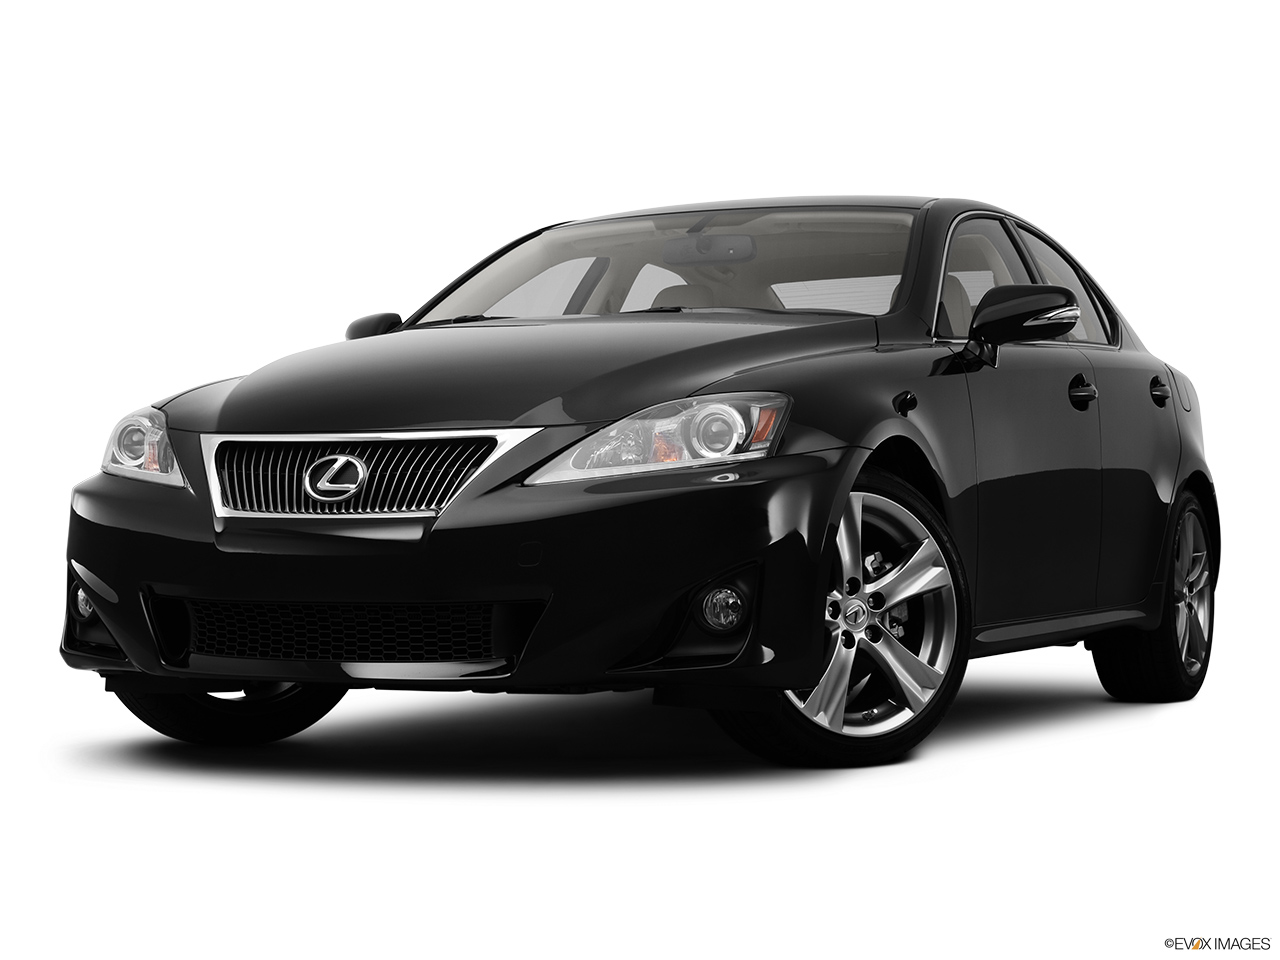 2012 Lexus IS 250 IS250 Front angle view, low wide perspective.